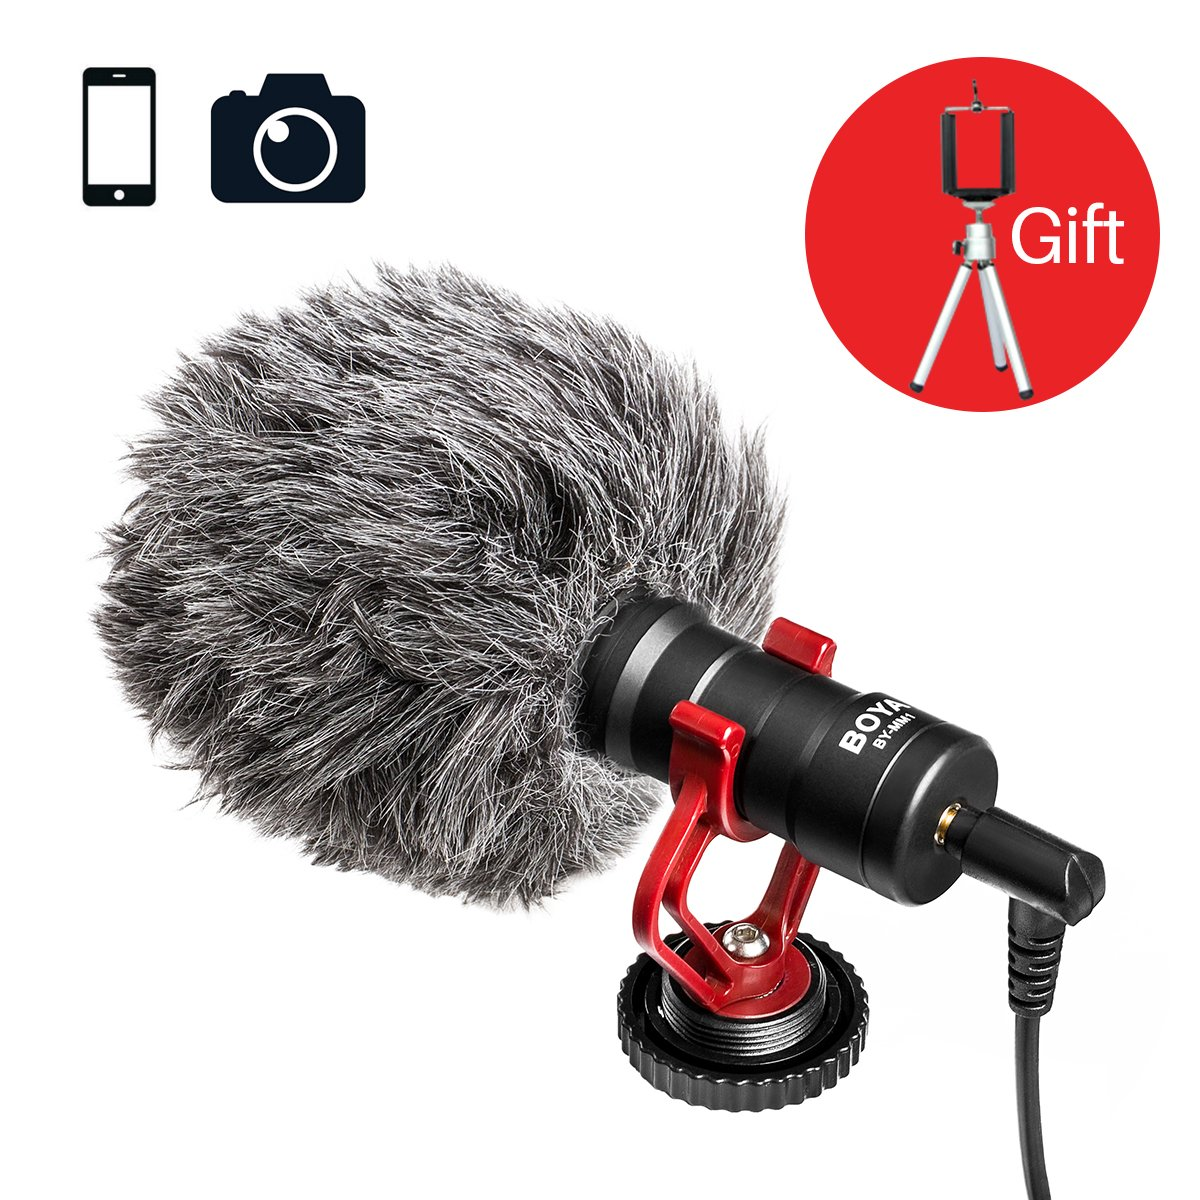 Free Tripod Gift, BOYA BY-MM1 Universal Video Microphone with Shock Mount, Deadcat Windscreen, Case for iPhone/Andoid Smartphones, Canon EOS/Nikon DSLR Cameras and Camcorders